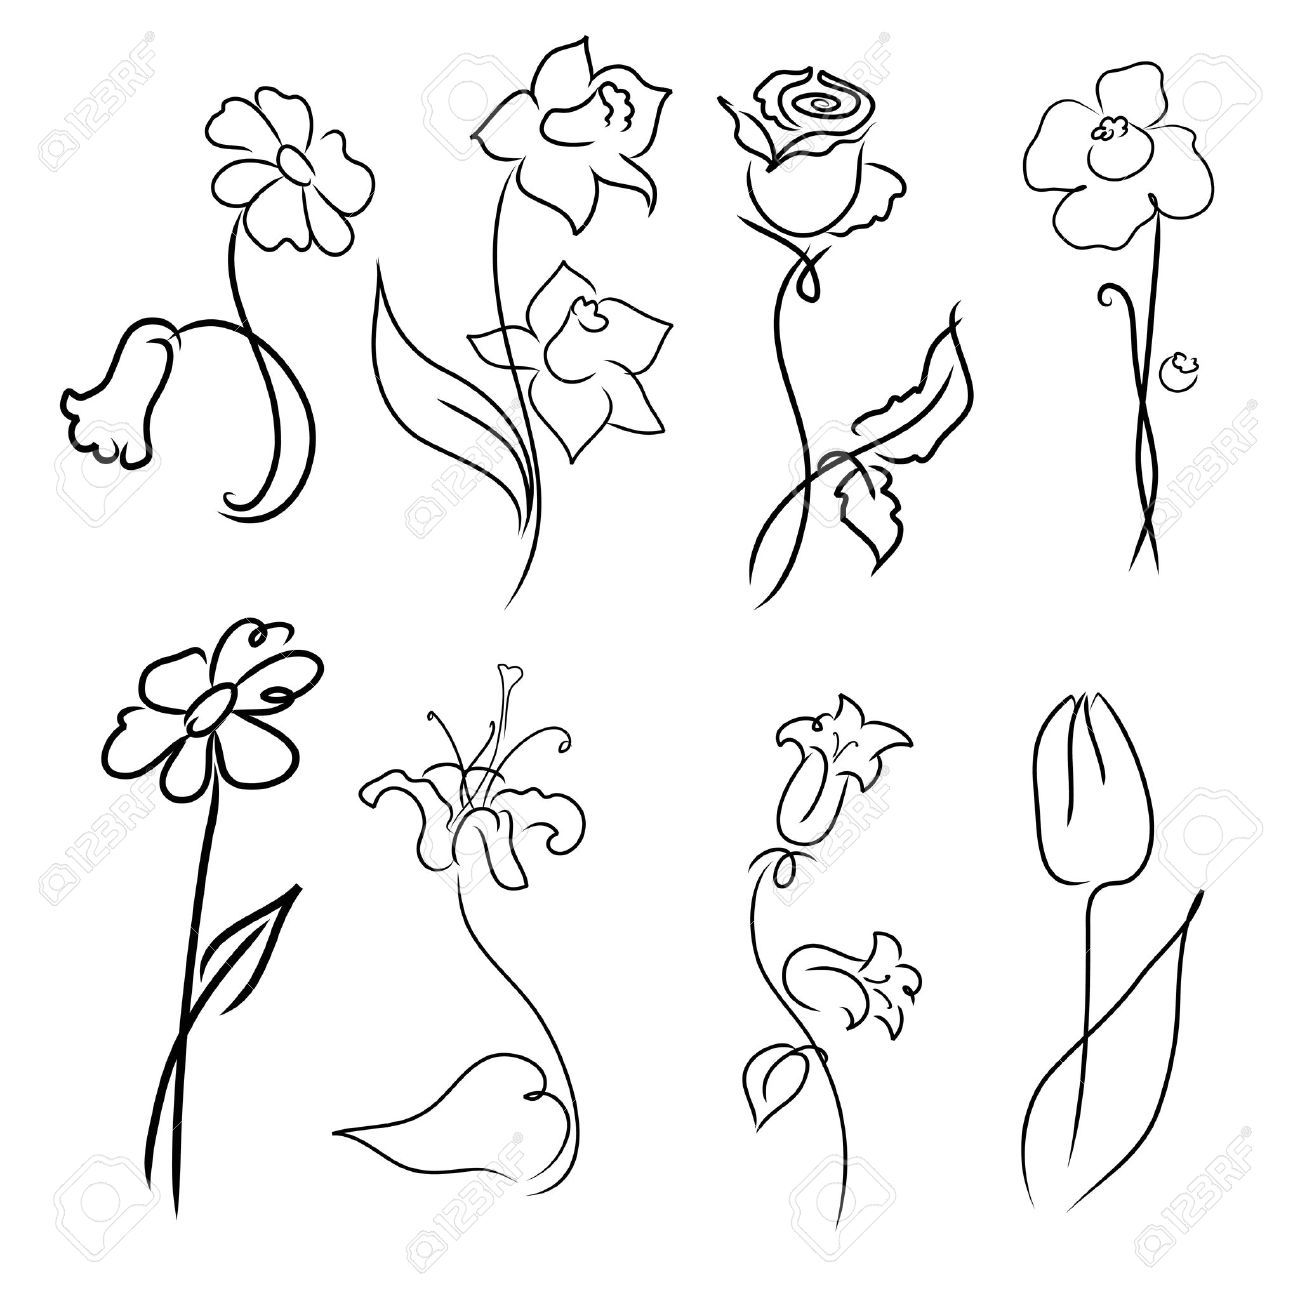 Flower Drawings Simple: Simple Flower Designs For Pencil Drawing